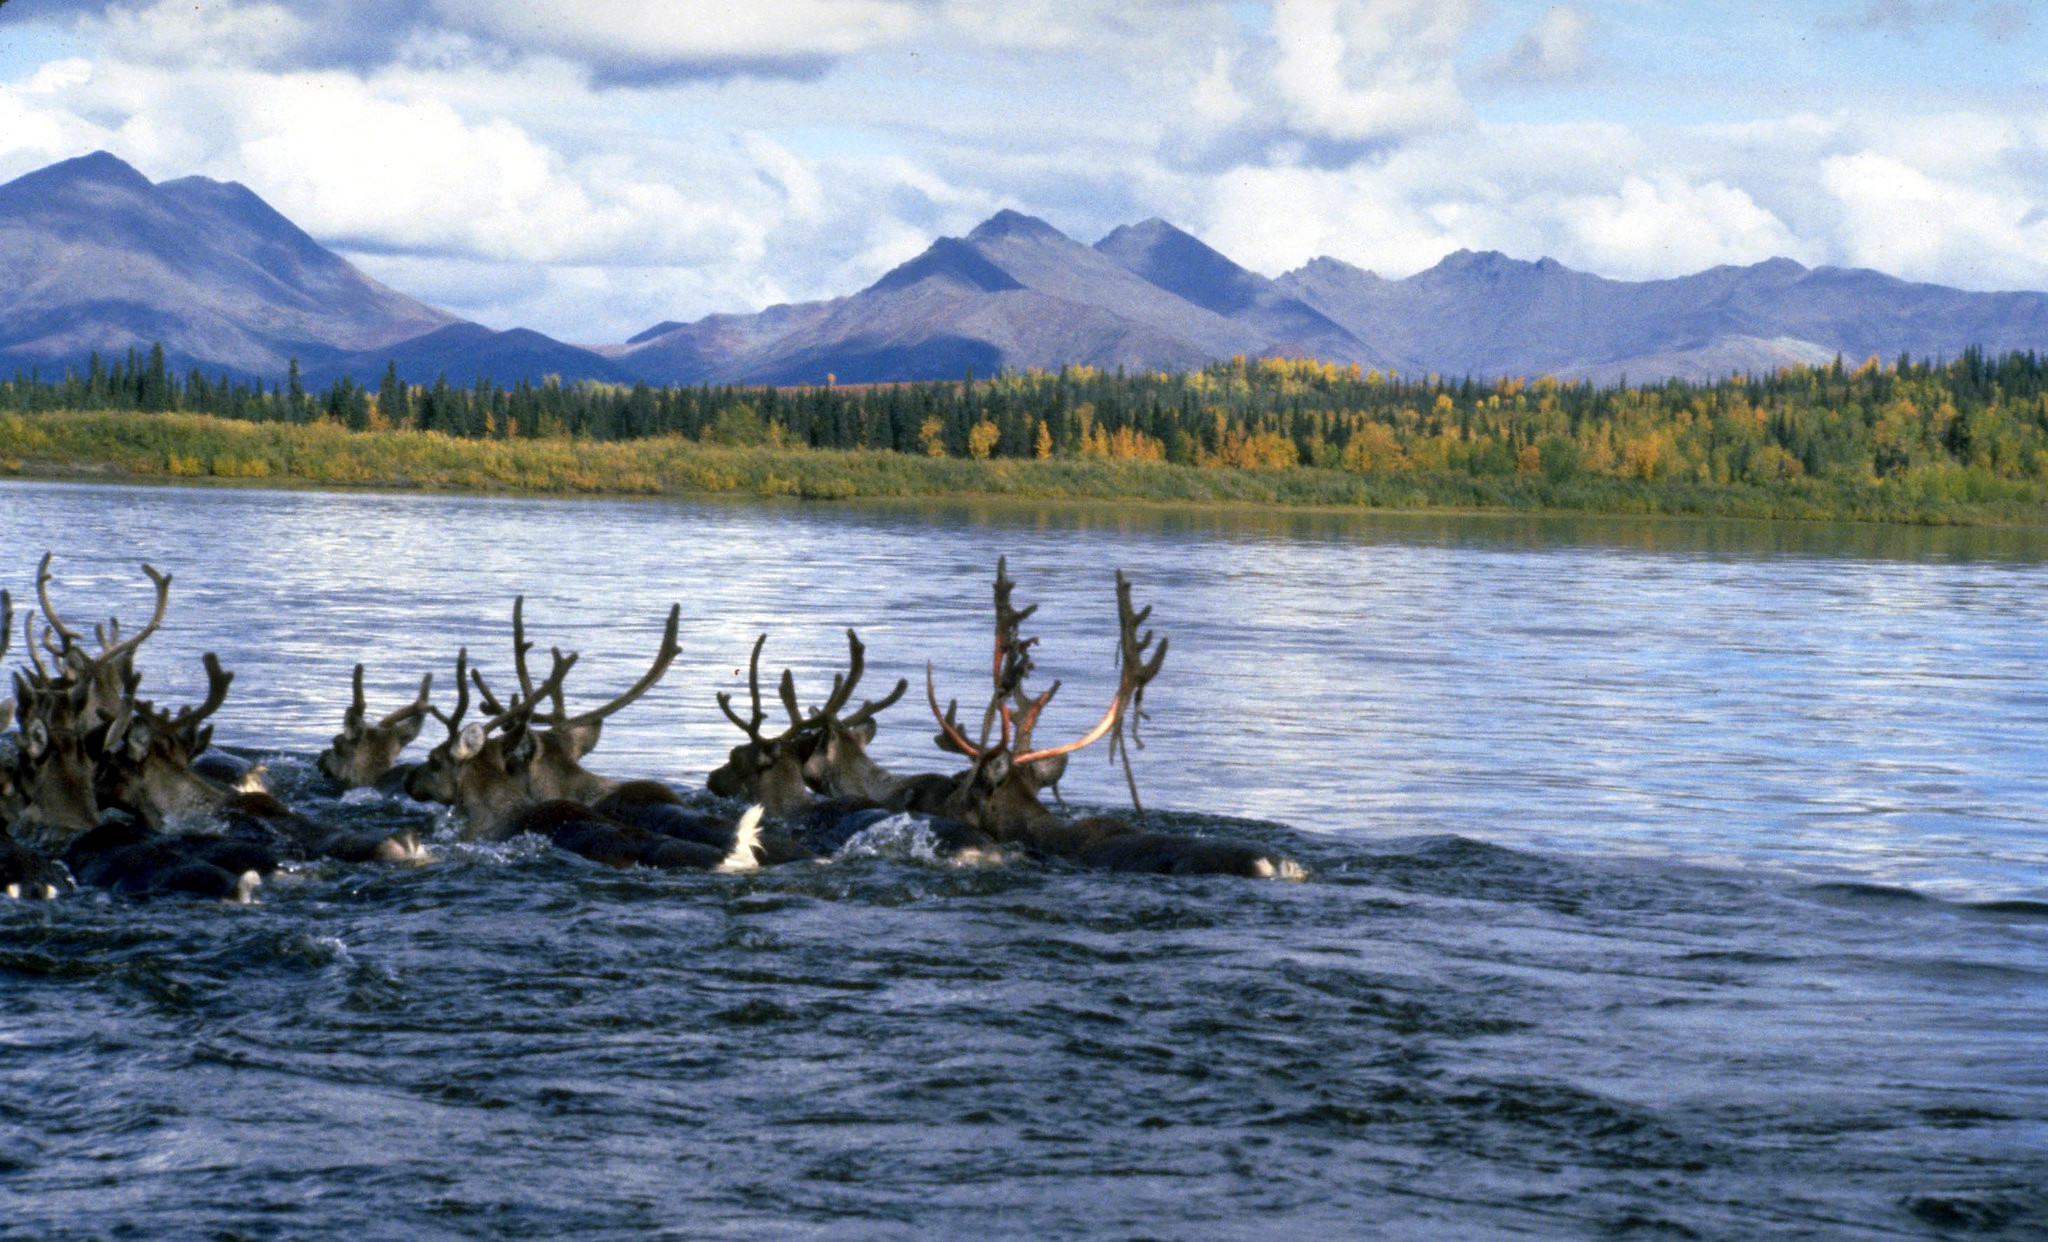 A small group of caribou swim across a wide river with a forest and mountains on the far bank.